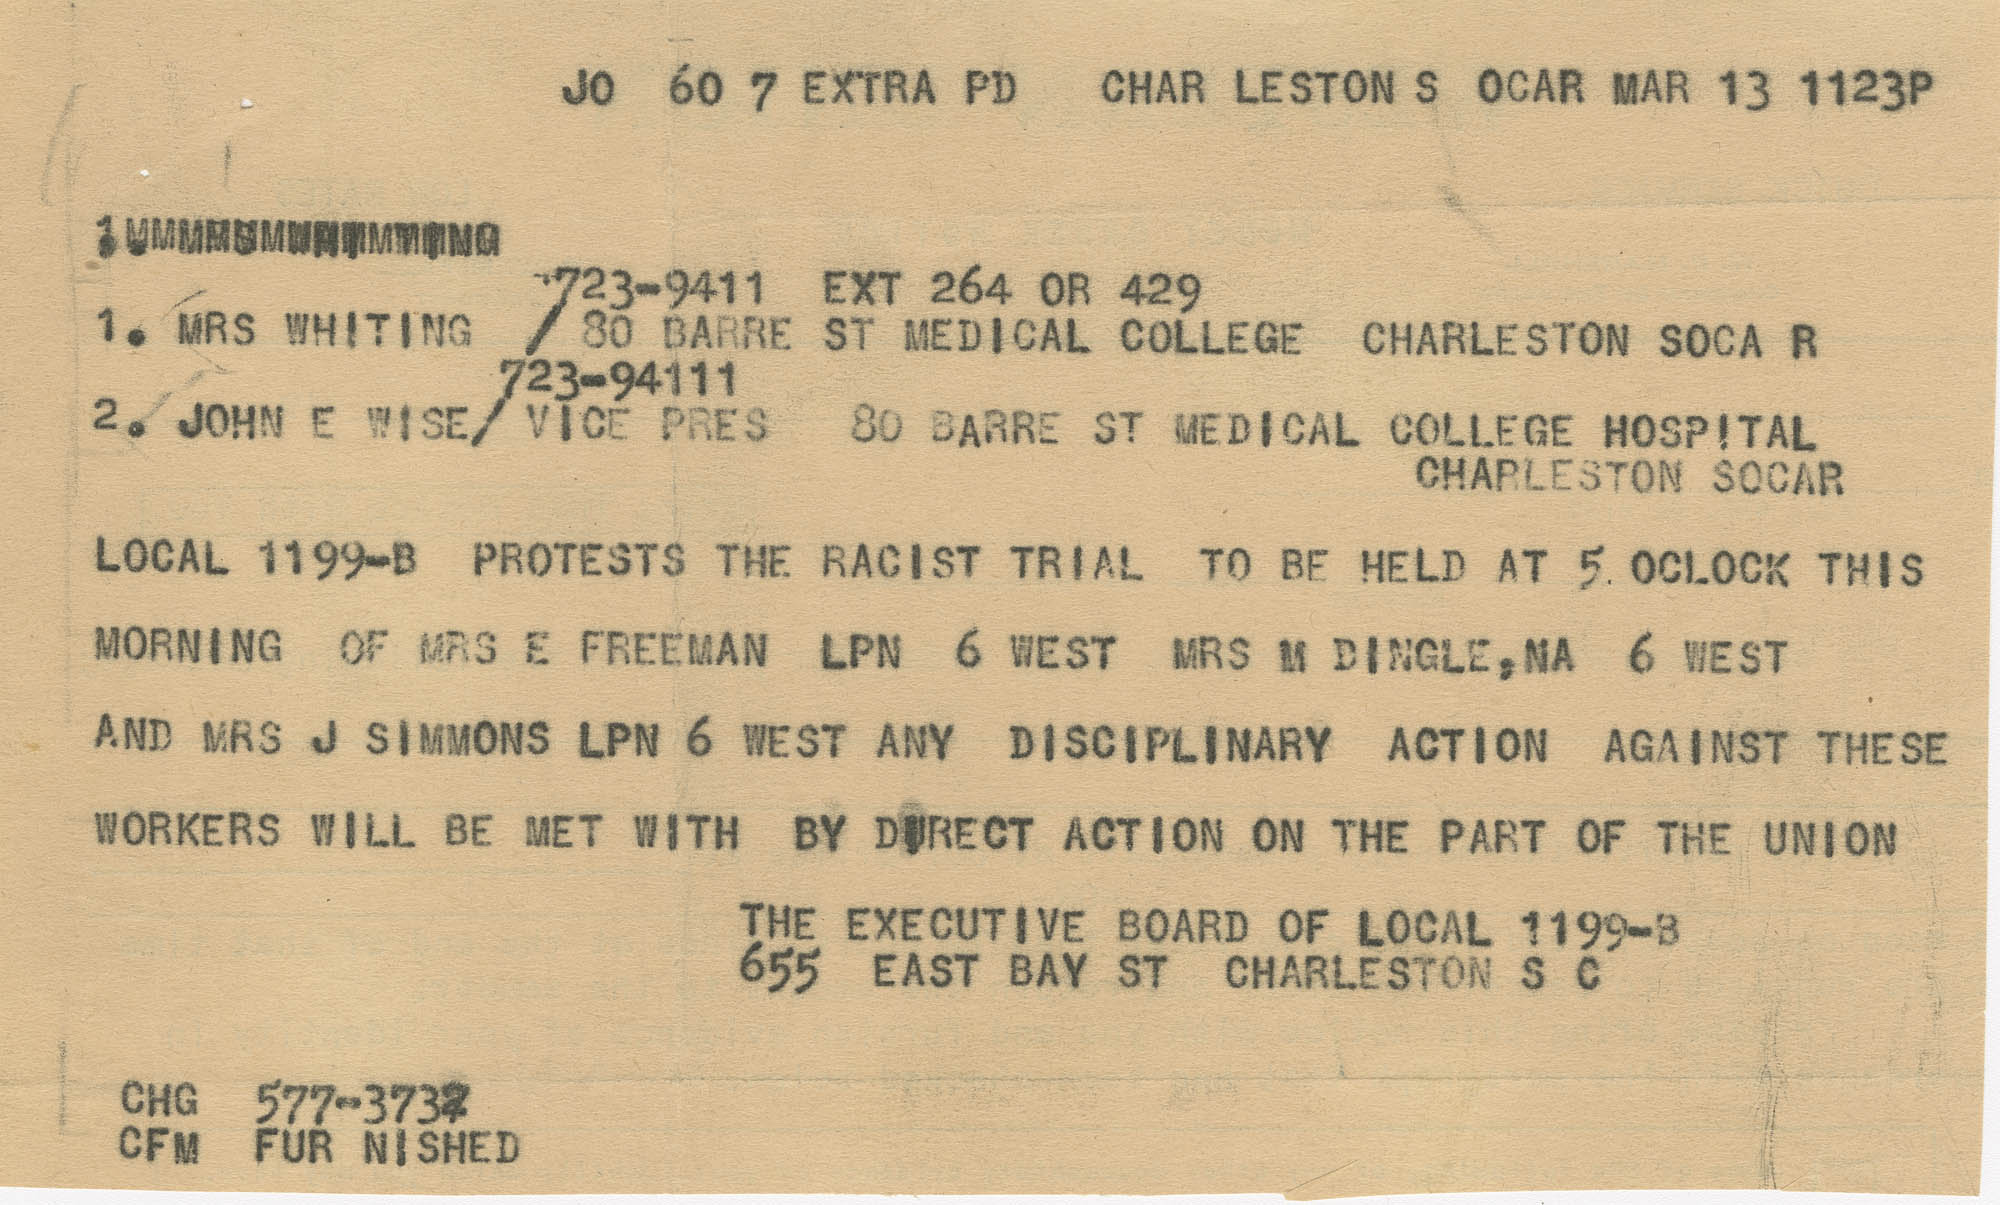 Telegram to Medical College administrators protesting trial of striking workers.